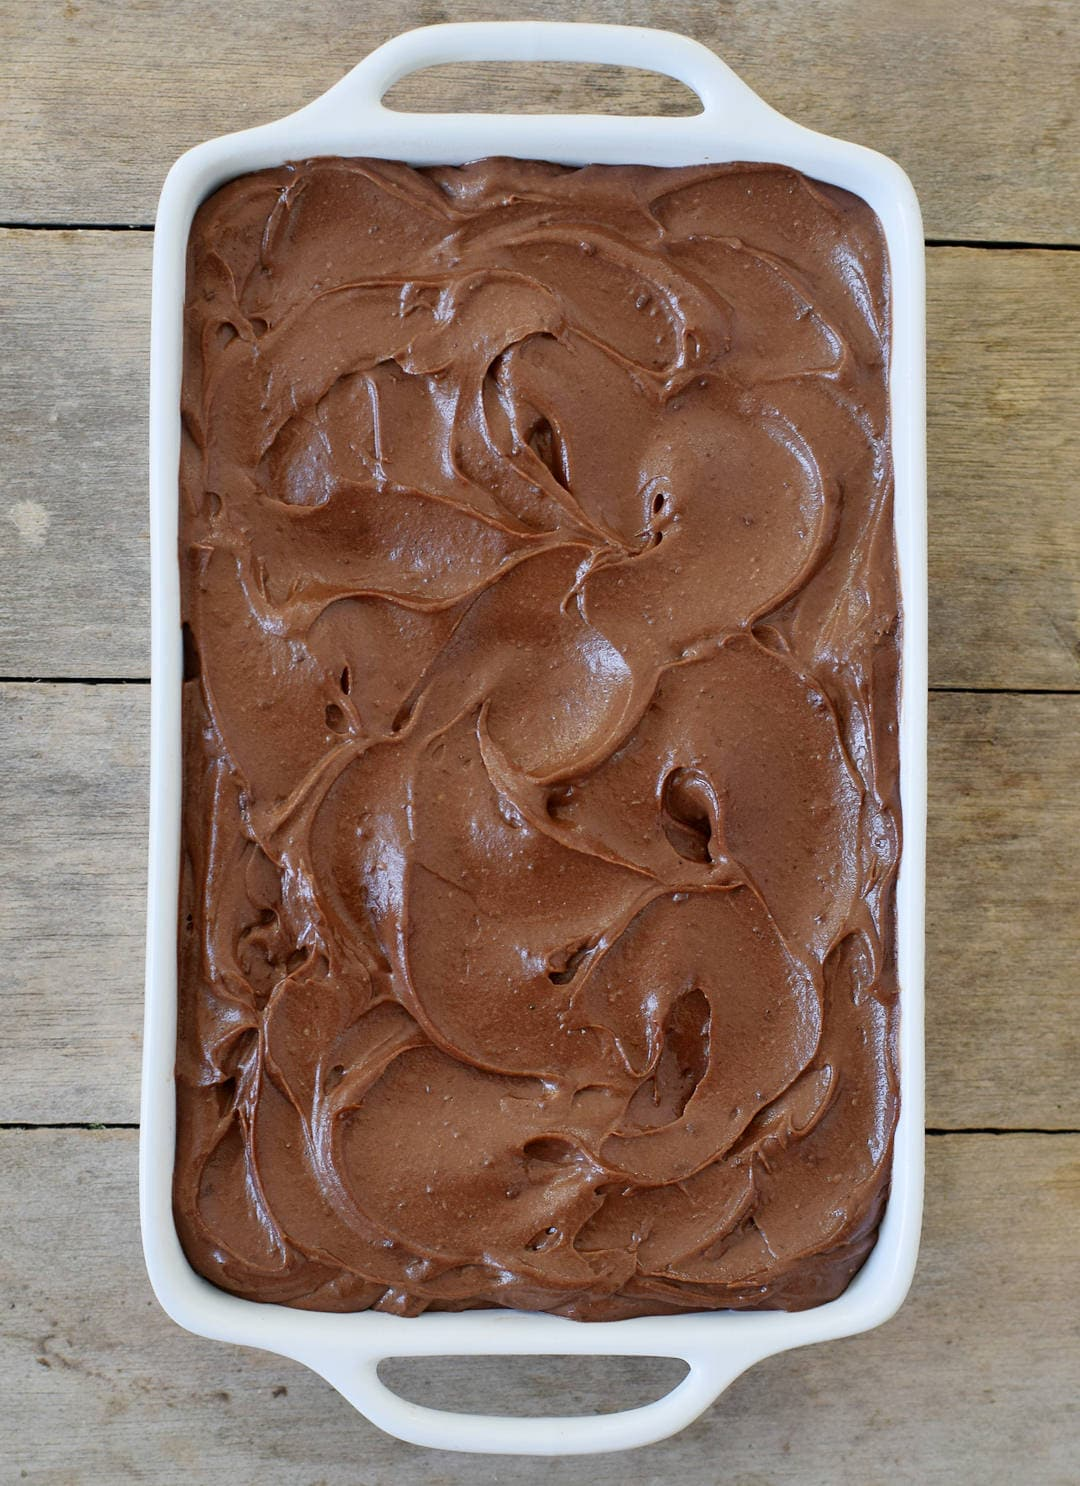 Chocolate batter in a baking dish with sweet potato frosting